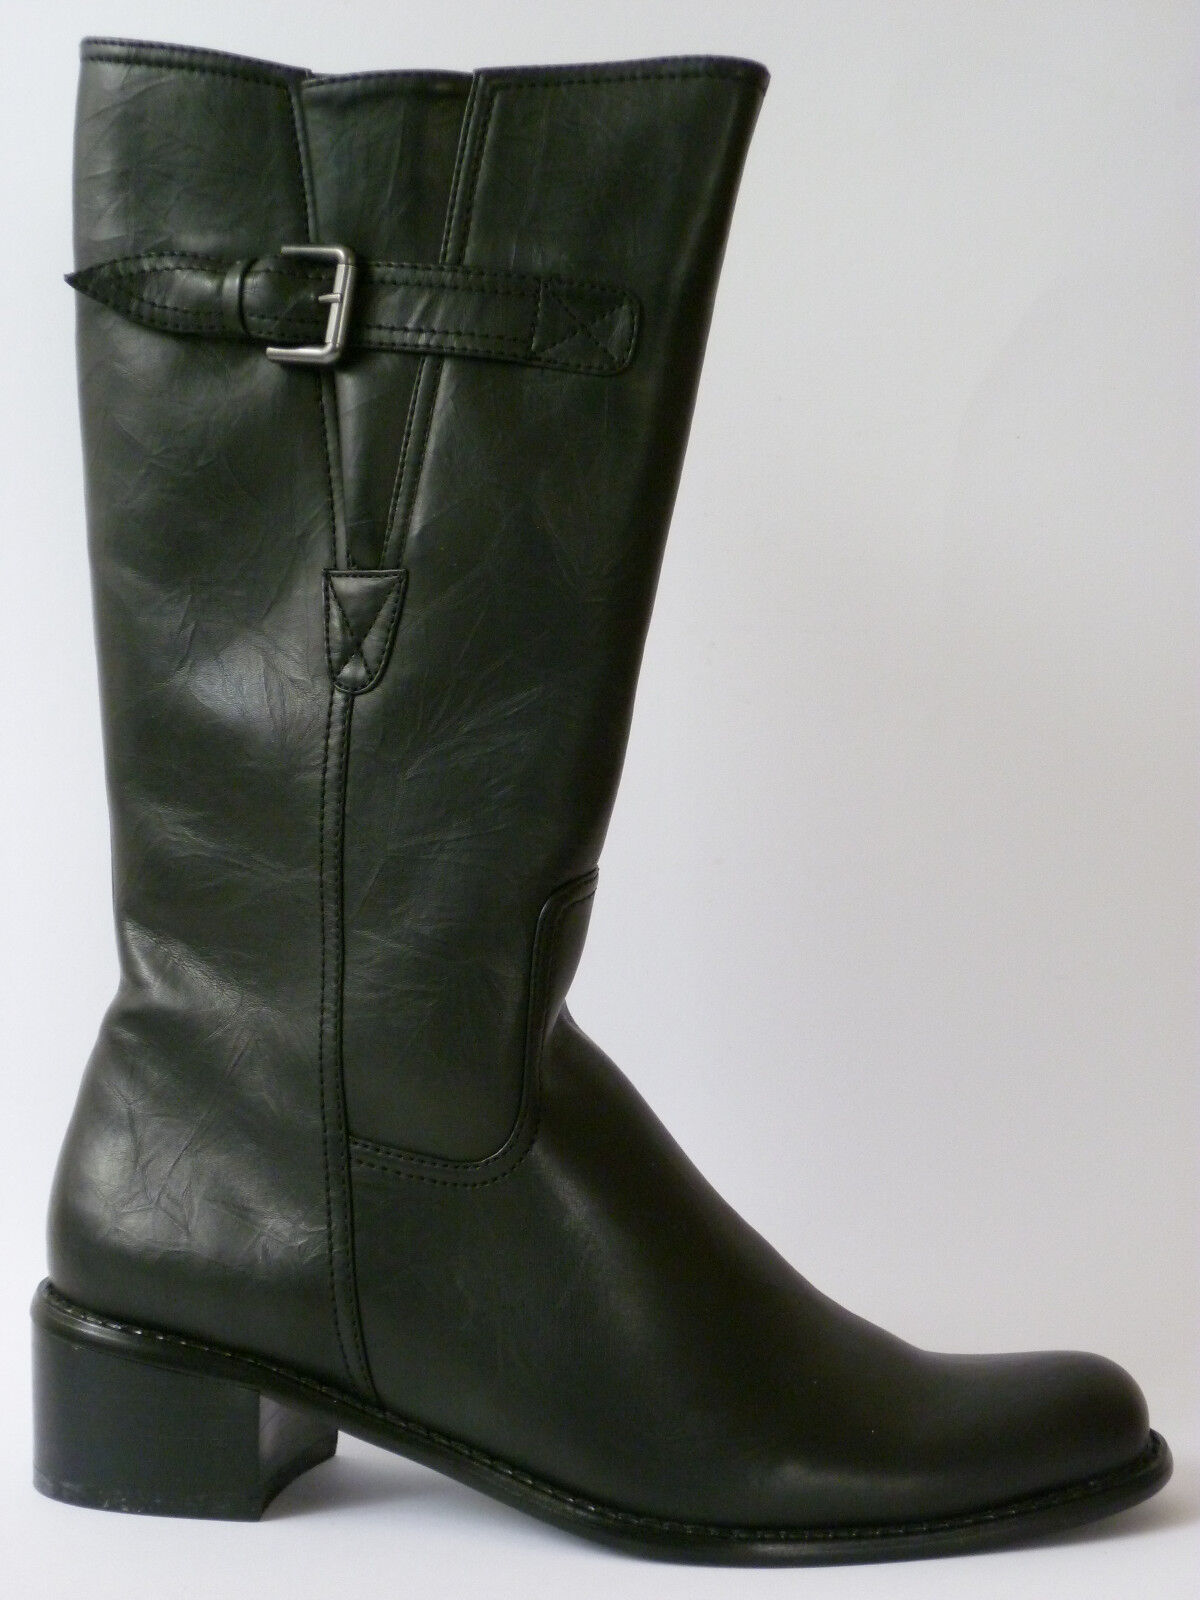 Blend Boots 41 Black Lined New